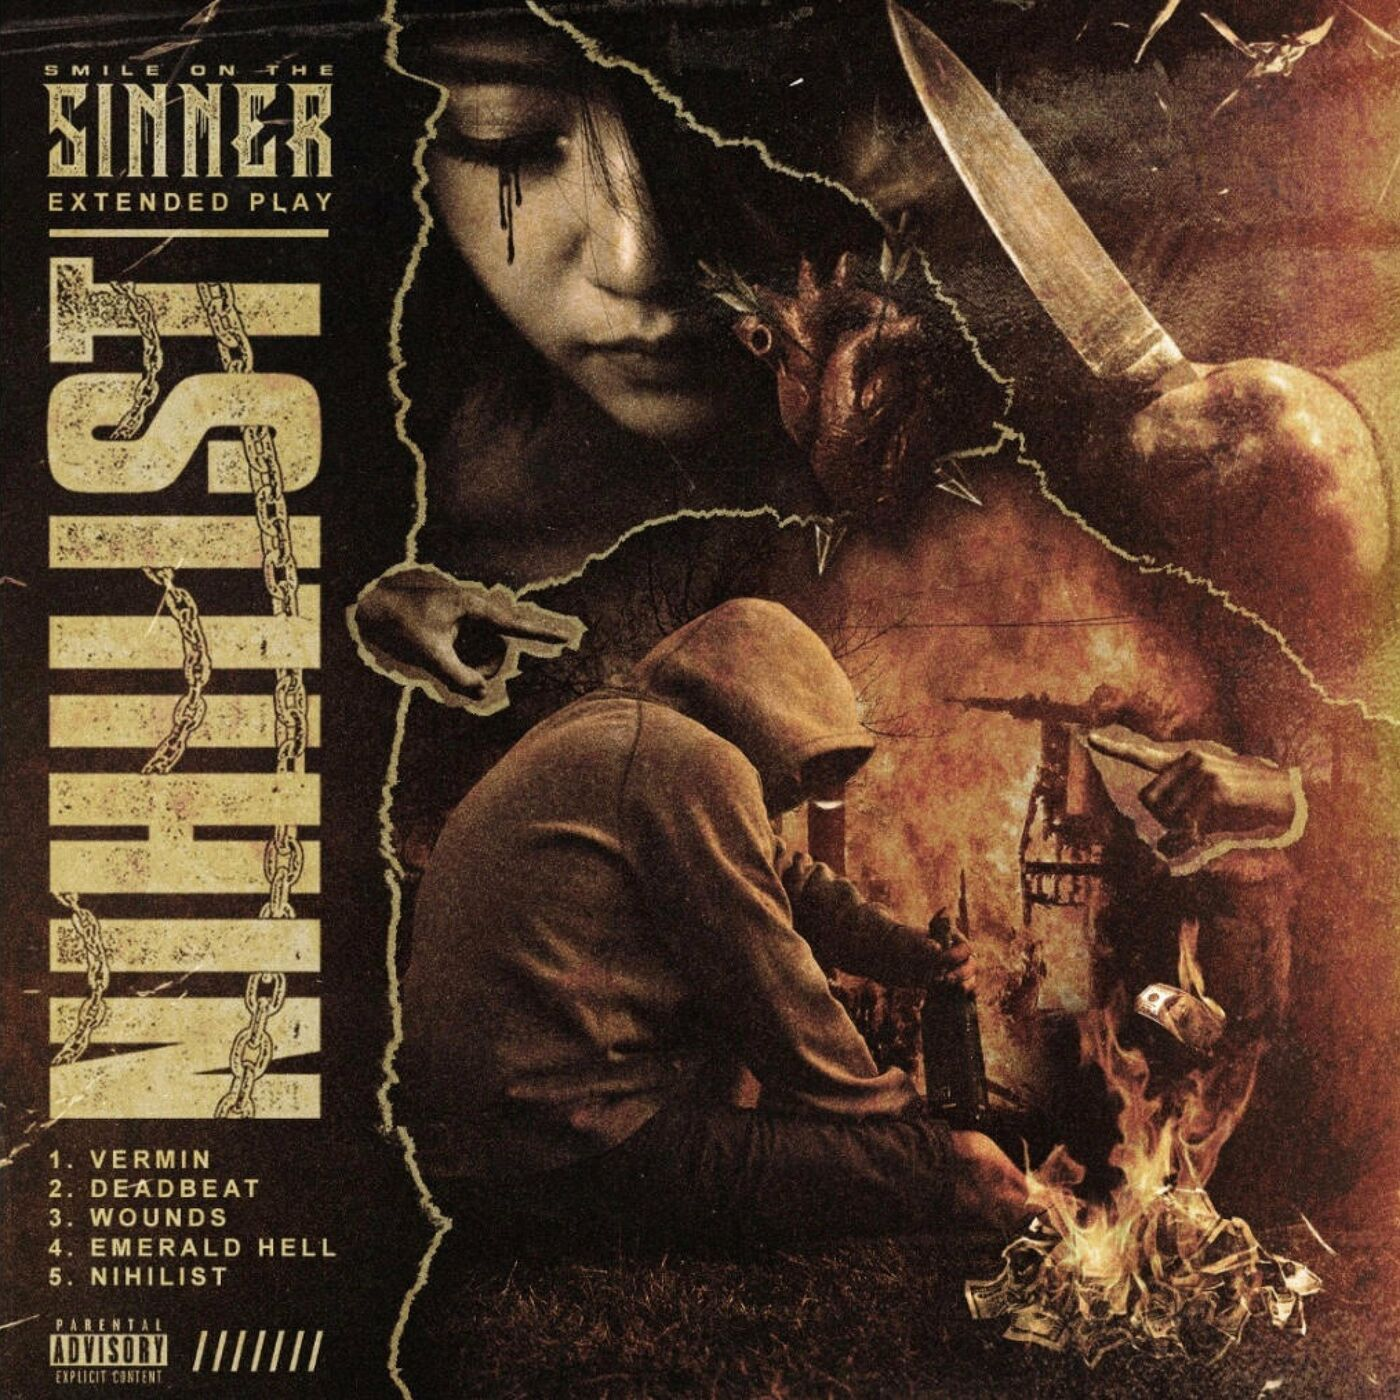 Smile on the Sinner - Vermin [single] (2021)